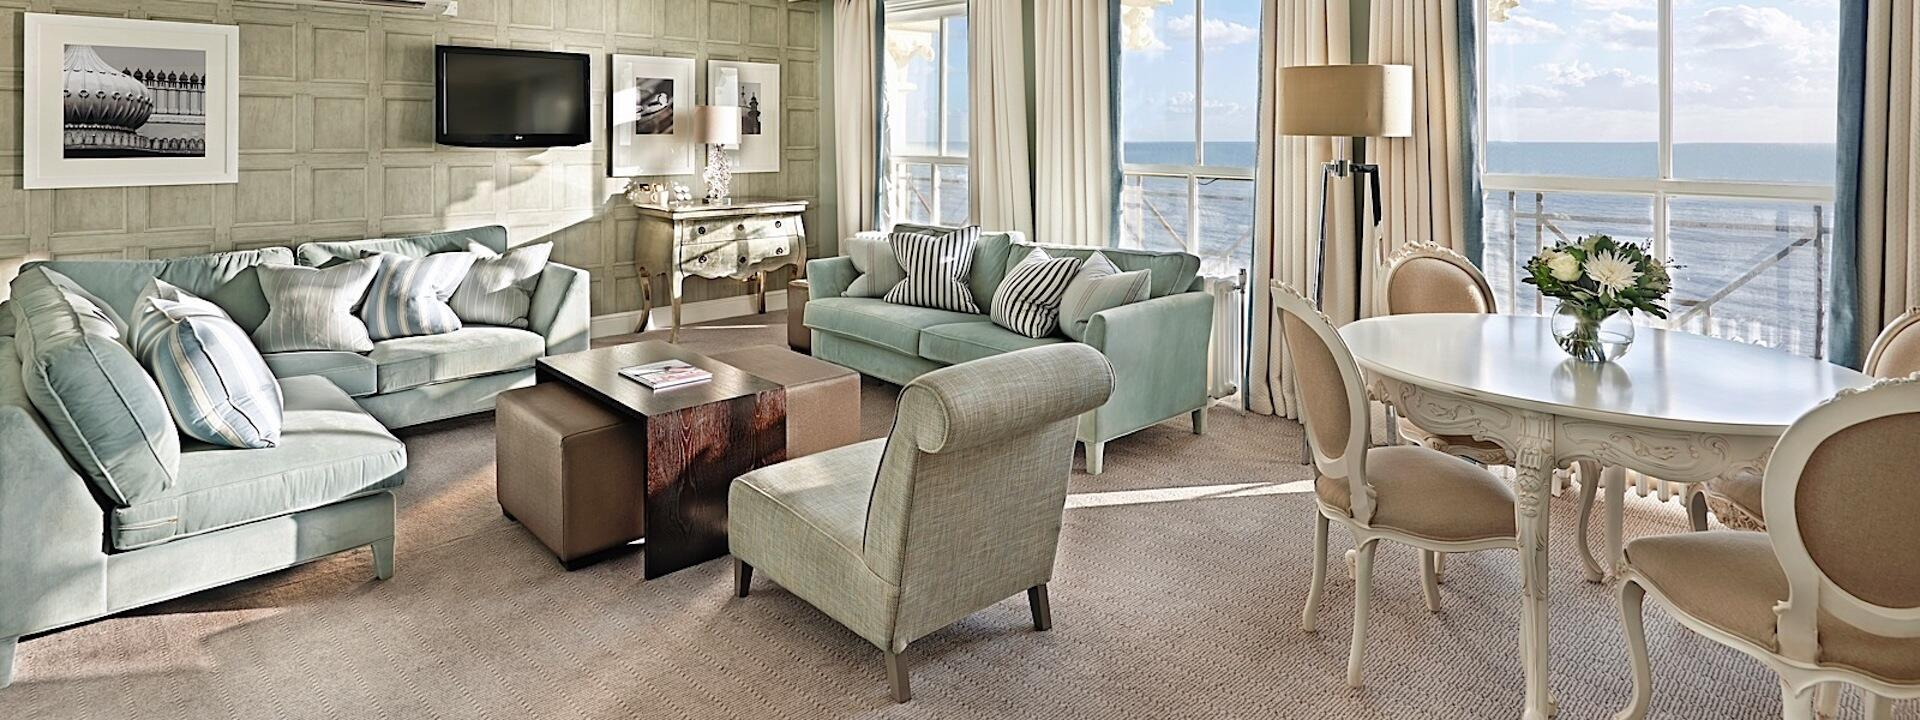 Kings Suite at The Grand Brighton